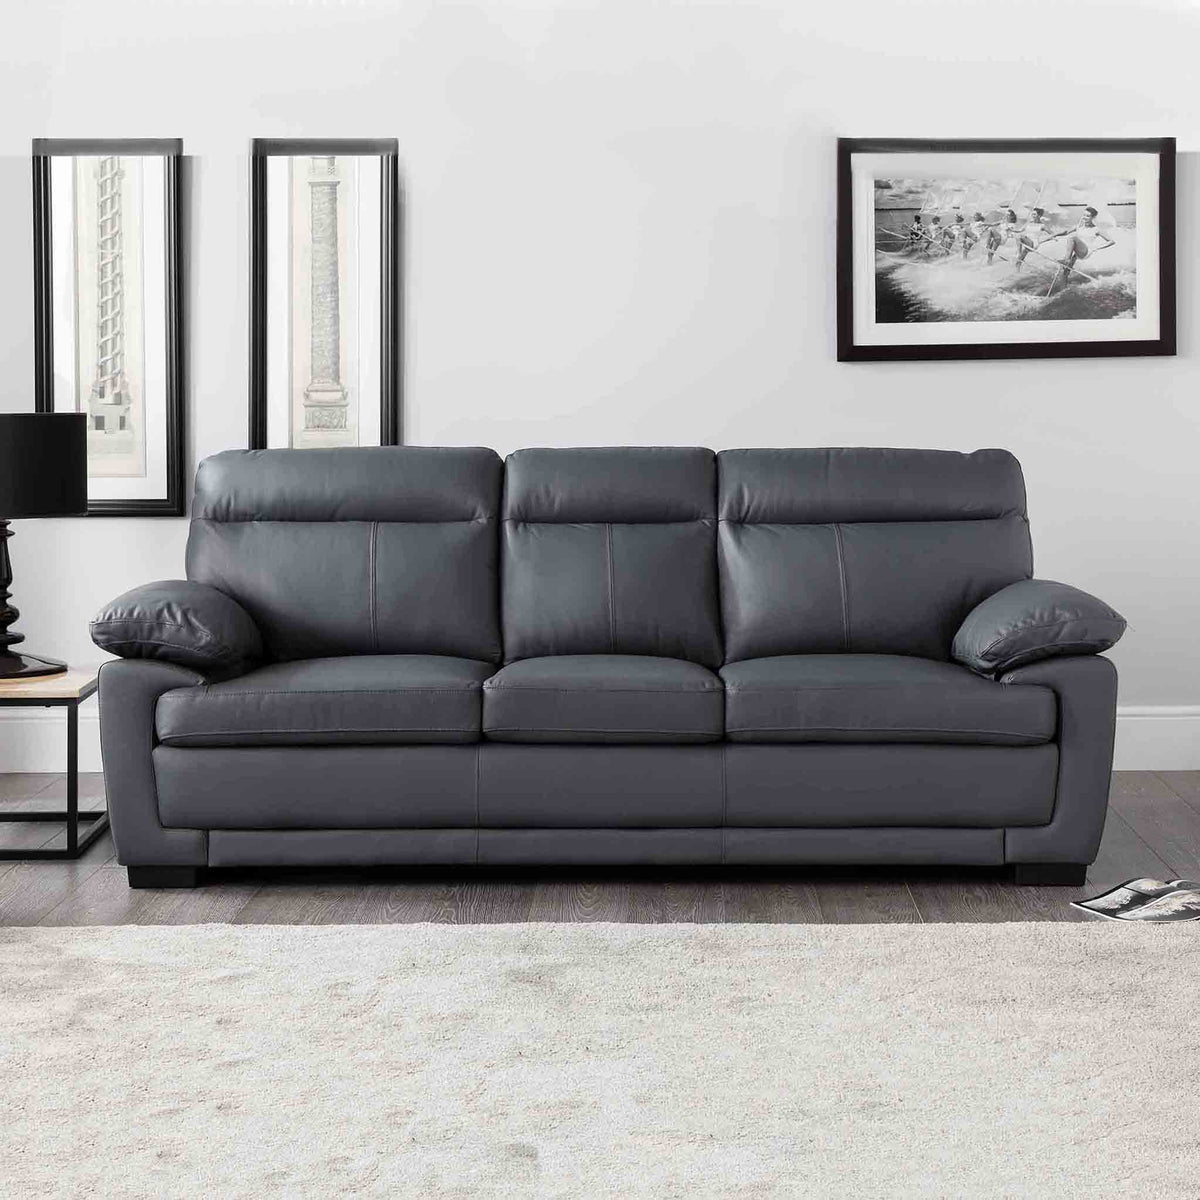 Hugo Grey 3 Seater Leather Sofa - Lifestyle